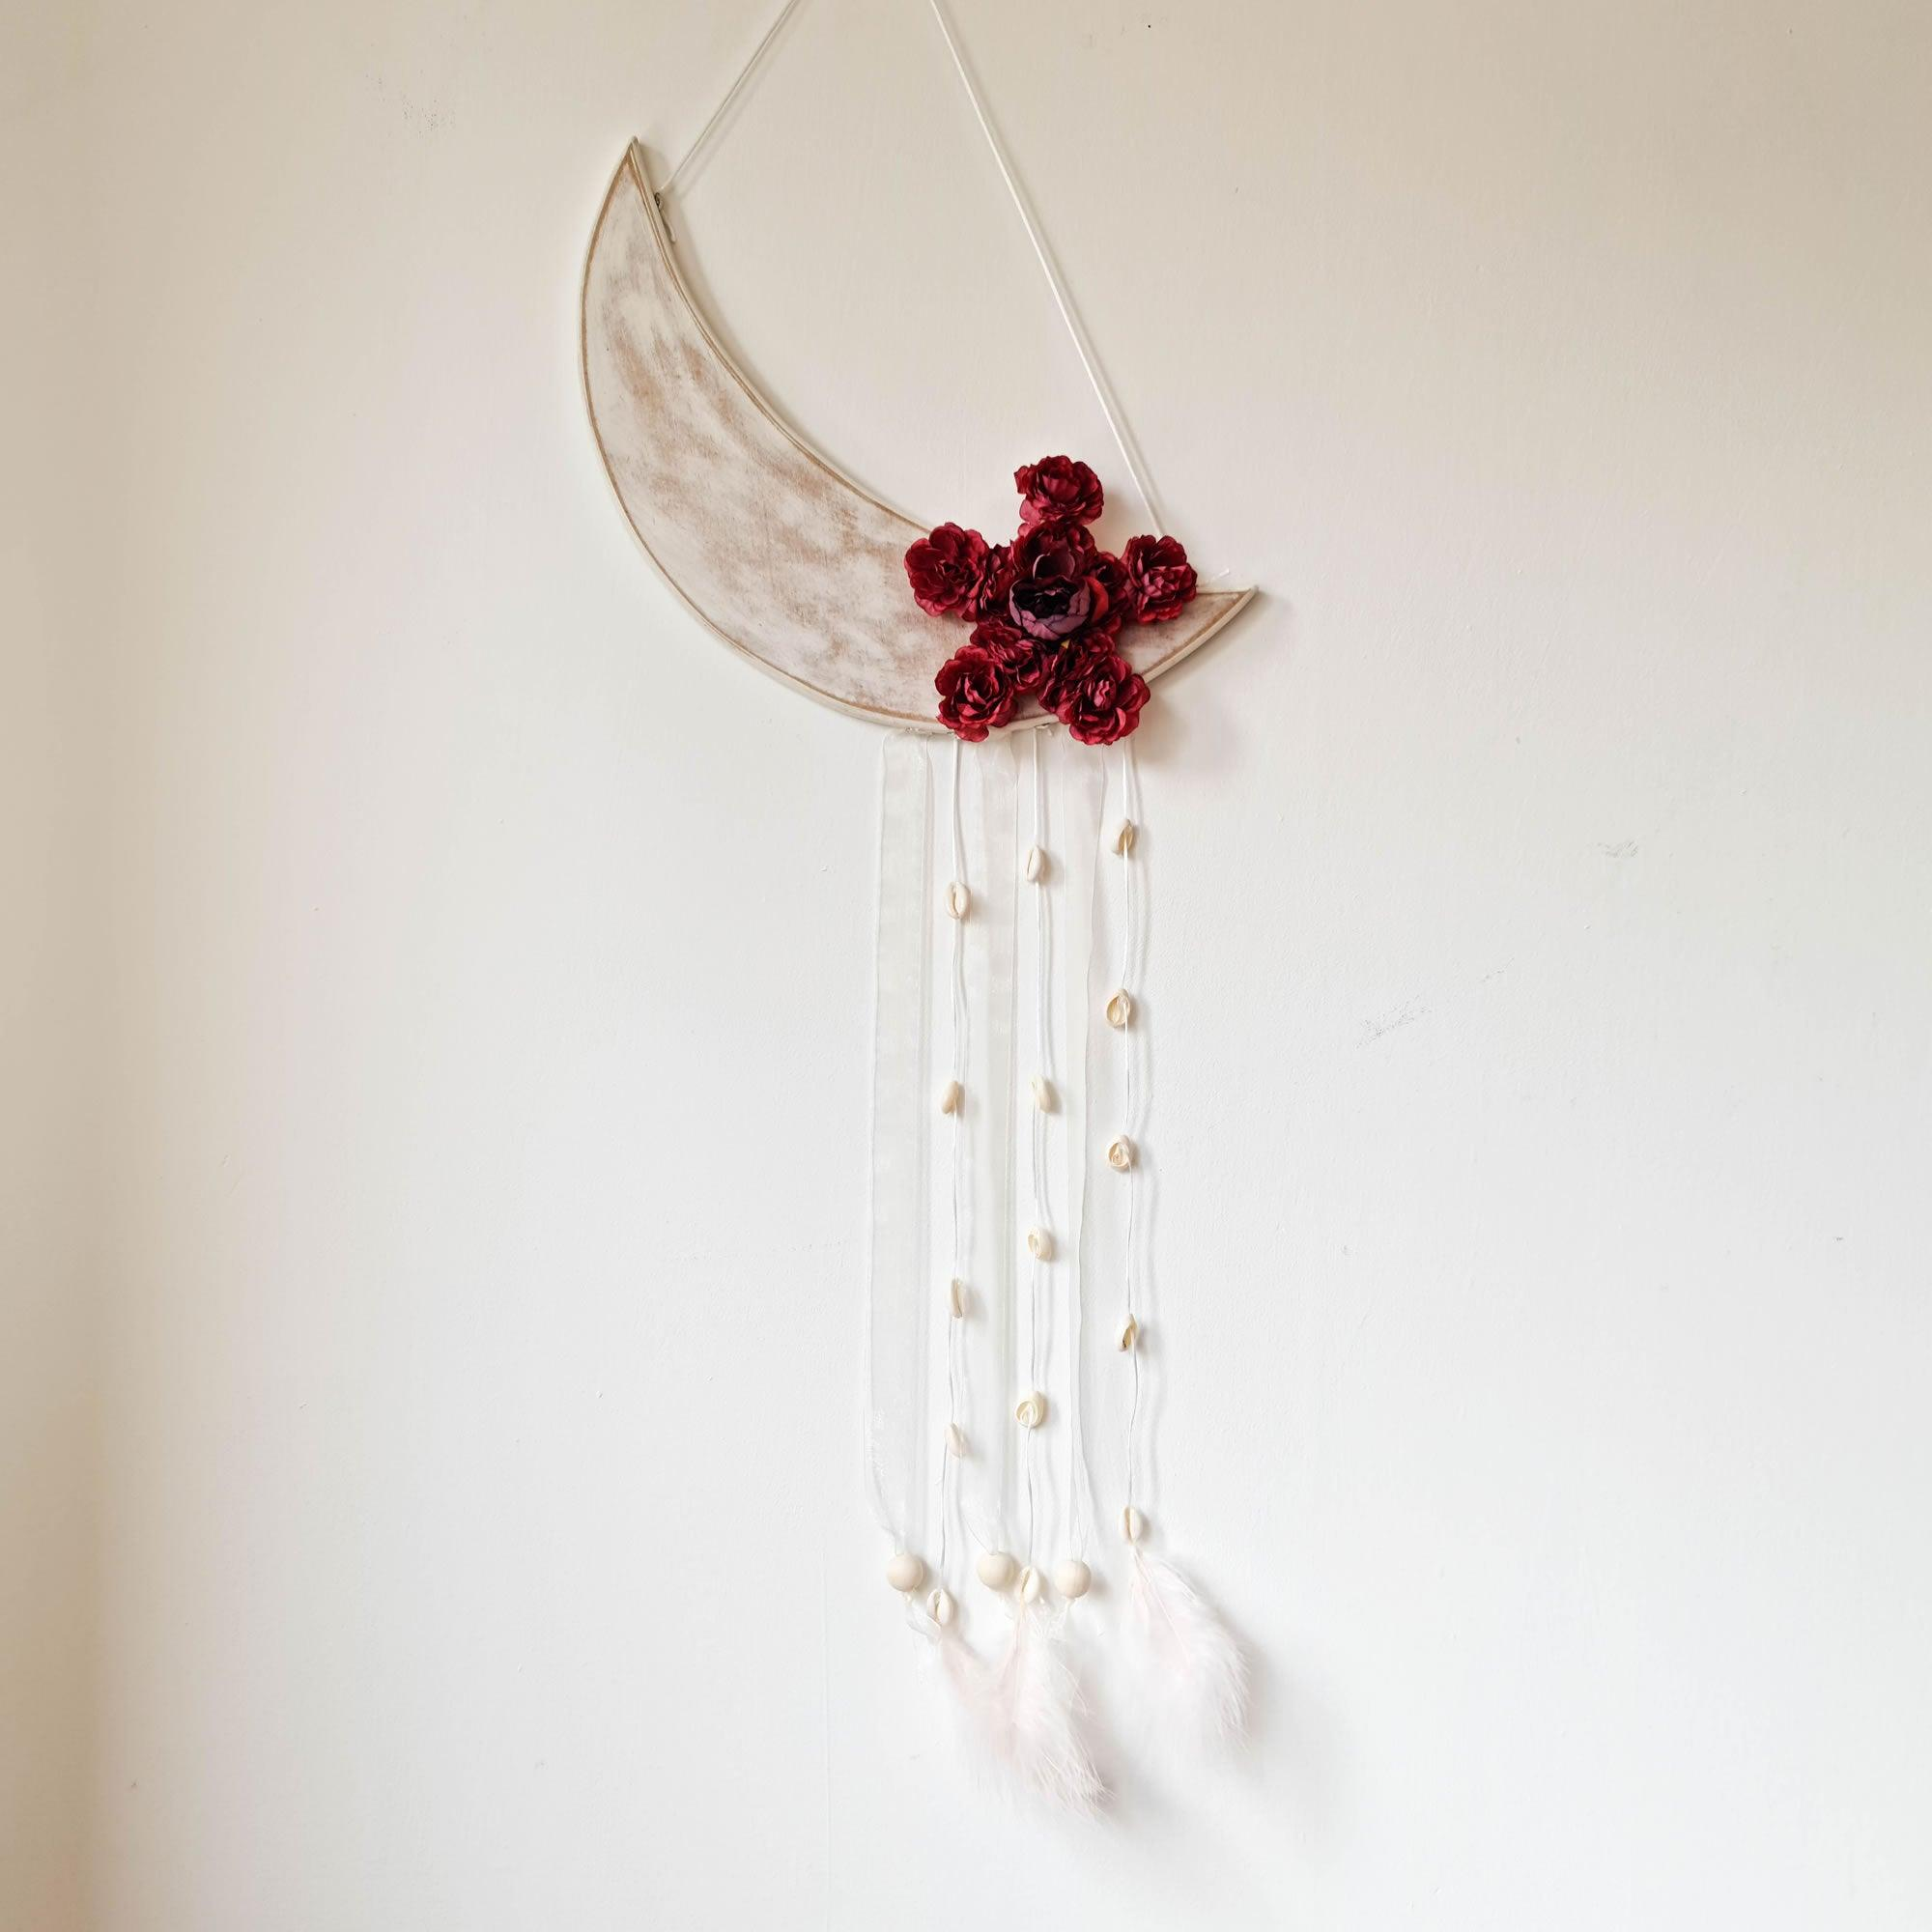 Bohemian Moon Star Flower Decorative Wall Hanging - 40 x 90 cm Dream Catcher Wedding Gift for her